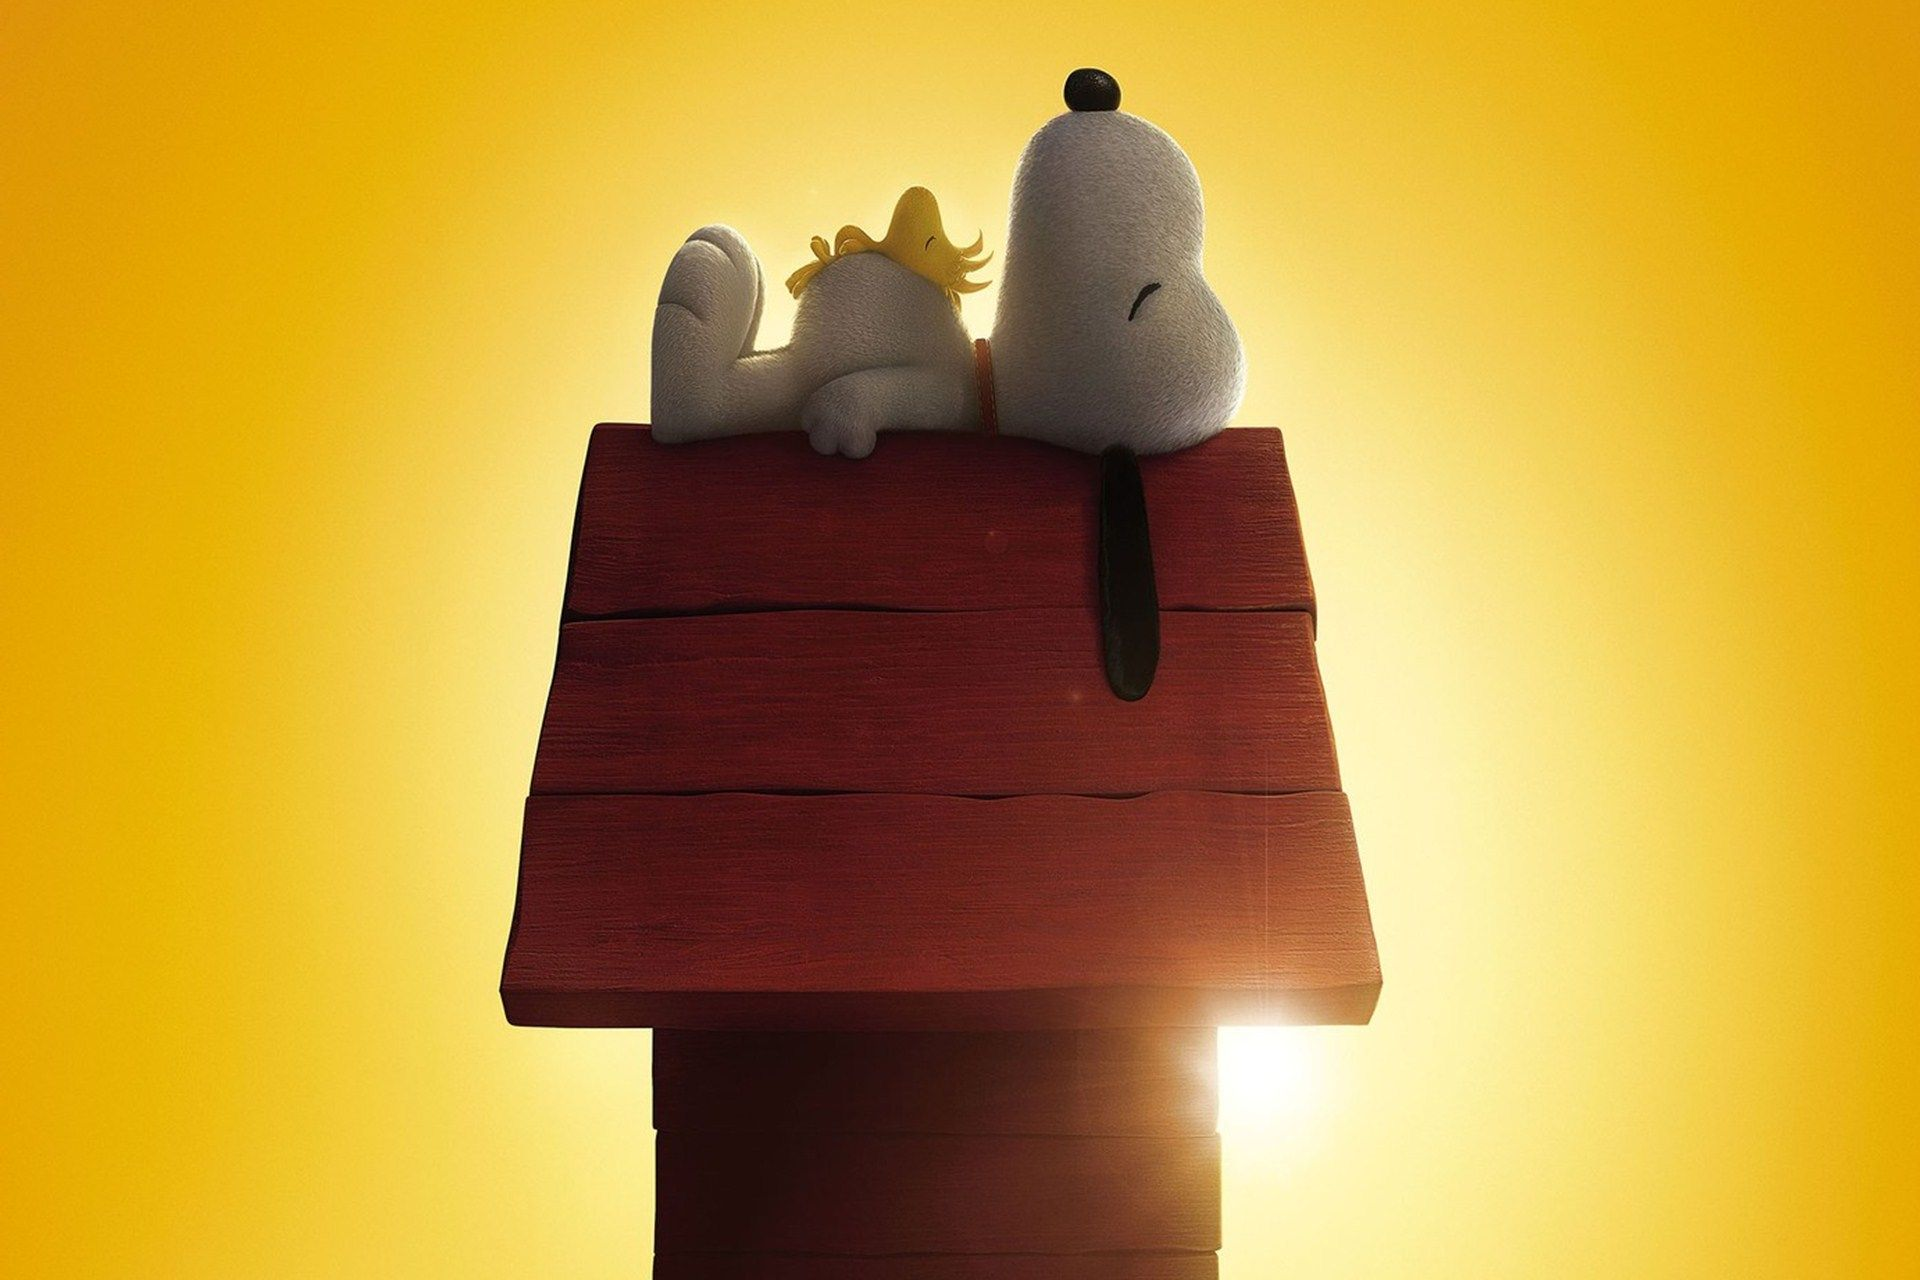 Free Snoopy Wallpaper And Screensavers Snoopy Gallery of